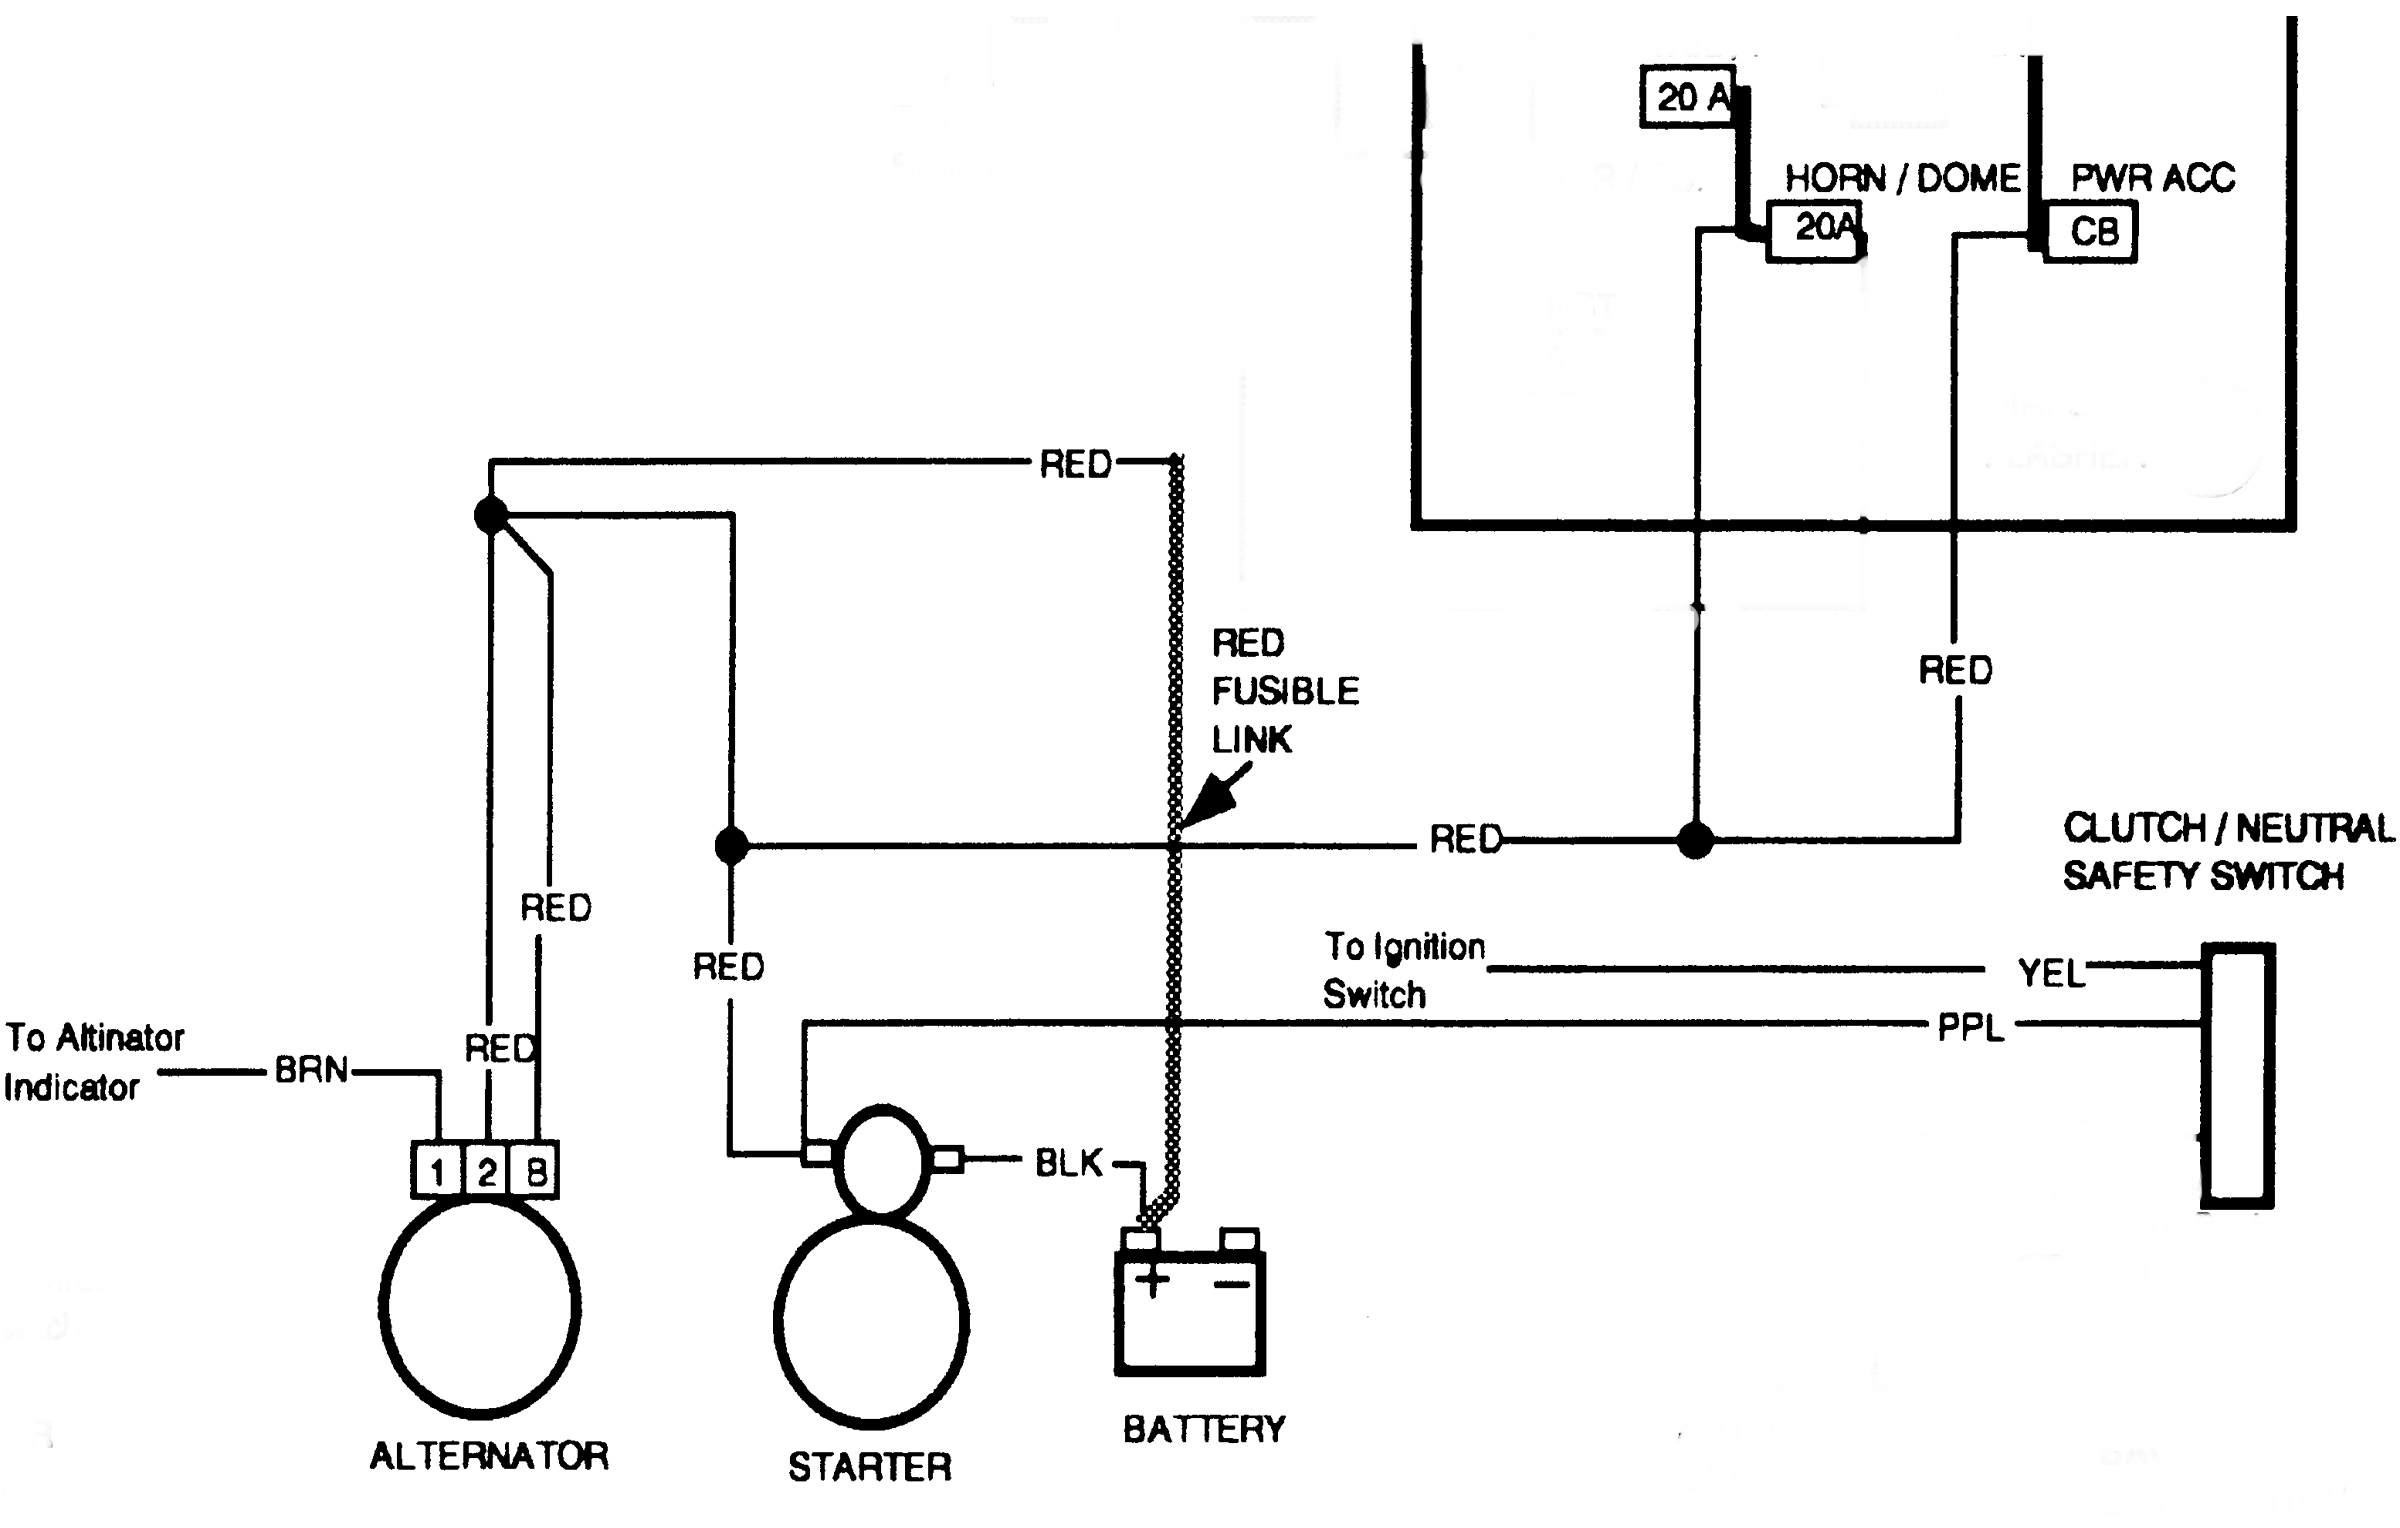 DIAGRAM] 1994 Chevy 1500 Alternator Wiring Diagram FULL Version HD Quality Wiring  Diagram - 10BTWIRING.CONCESSIONARIABELOGISENIGALLIA.ITconcessionariabelogisenigallia.it